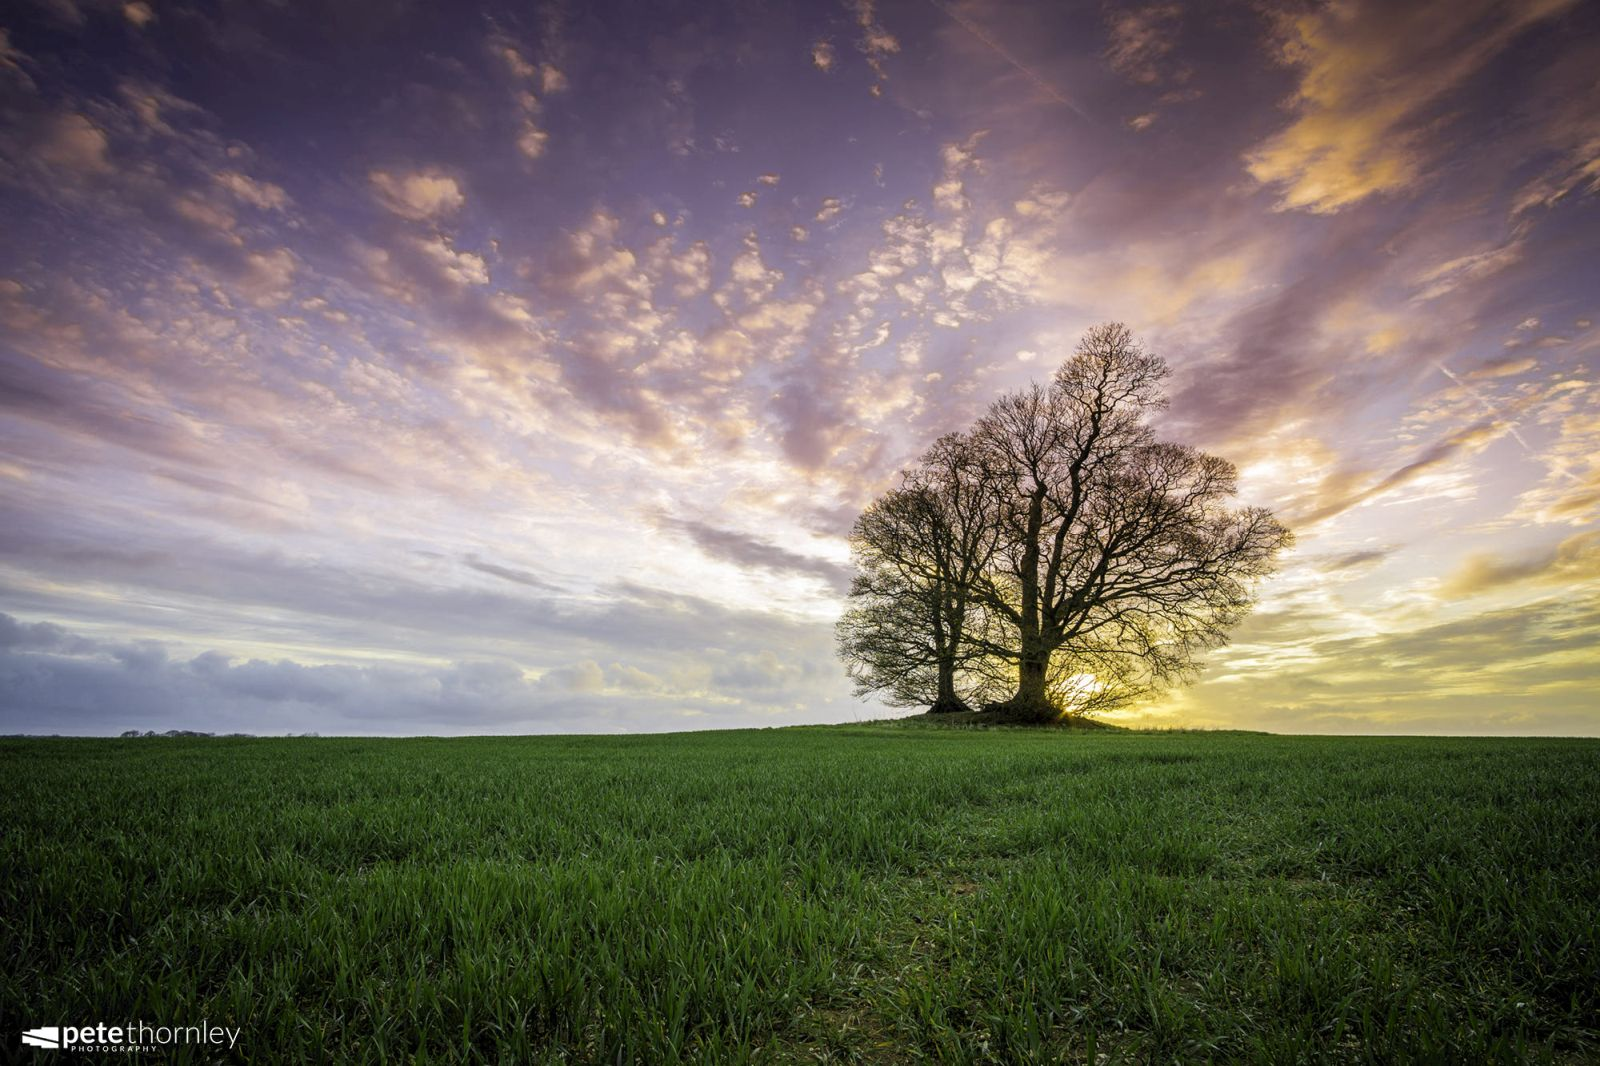 beautiful solitary tree photography pete thornley